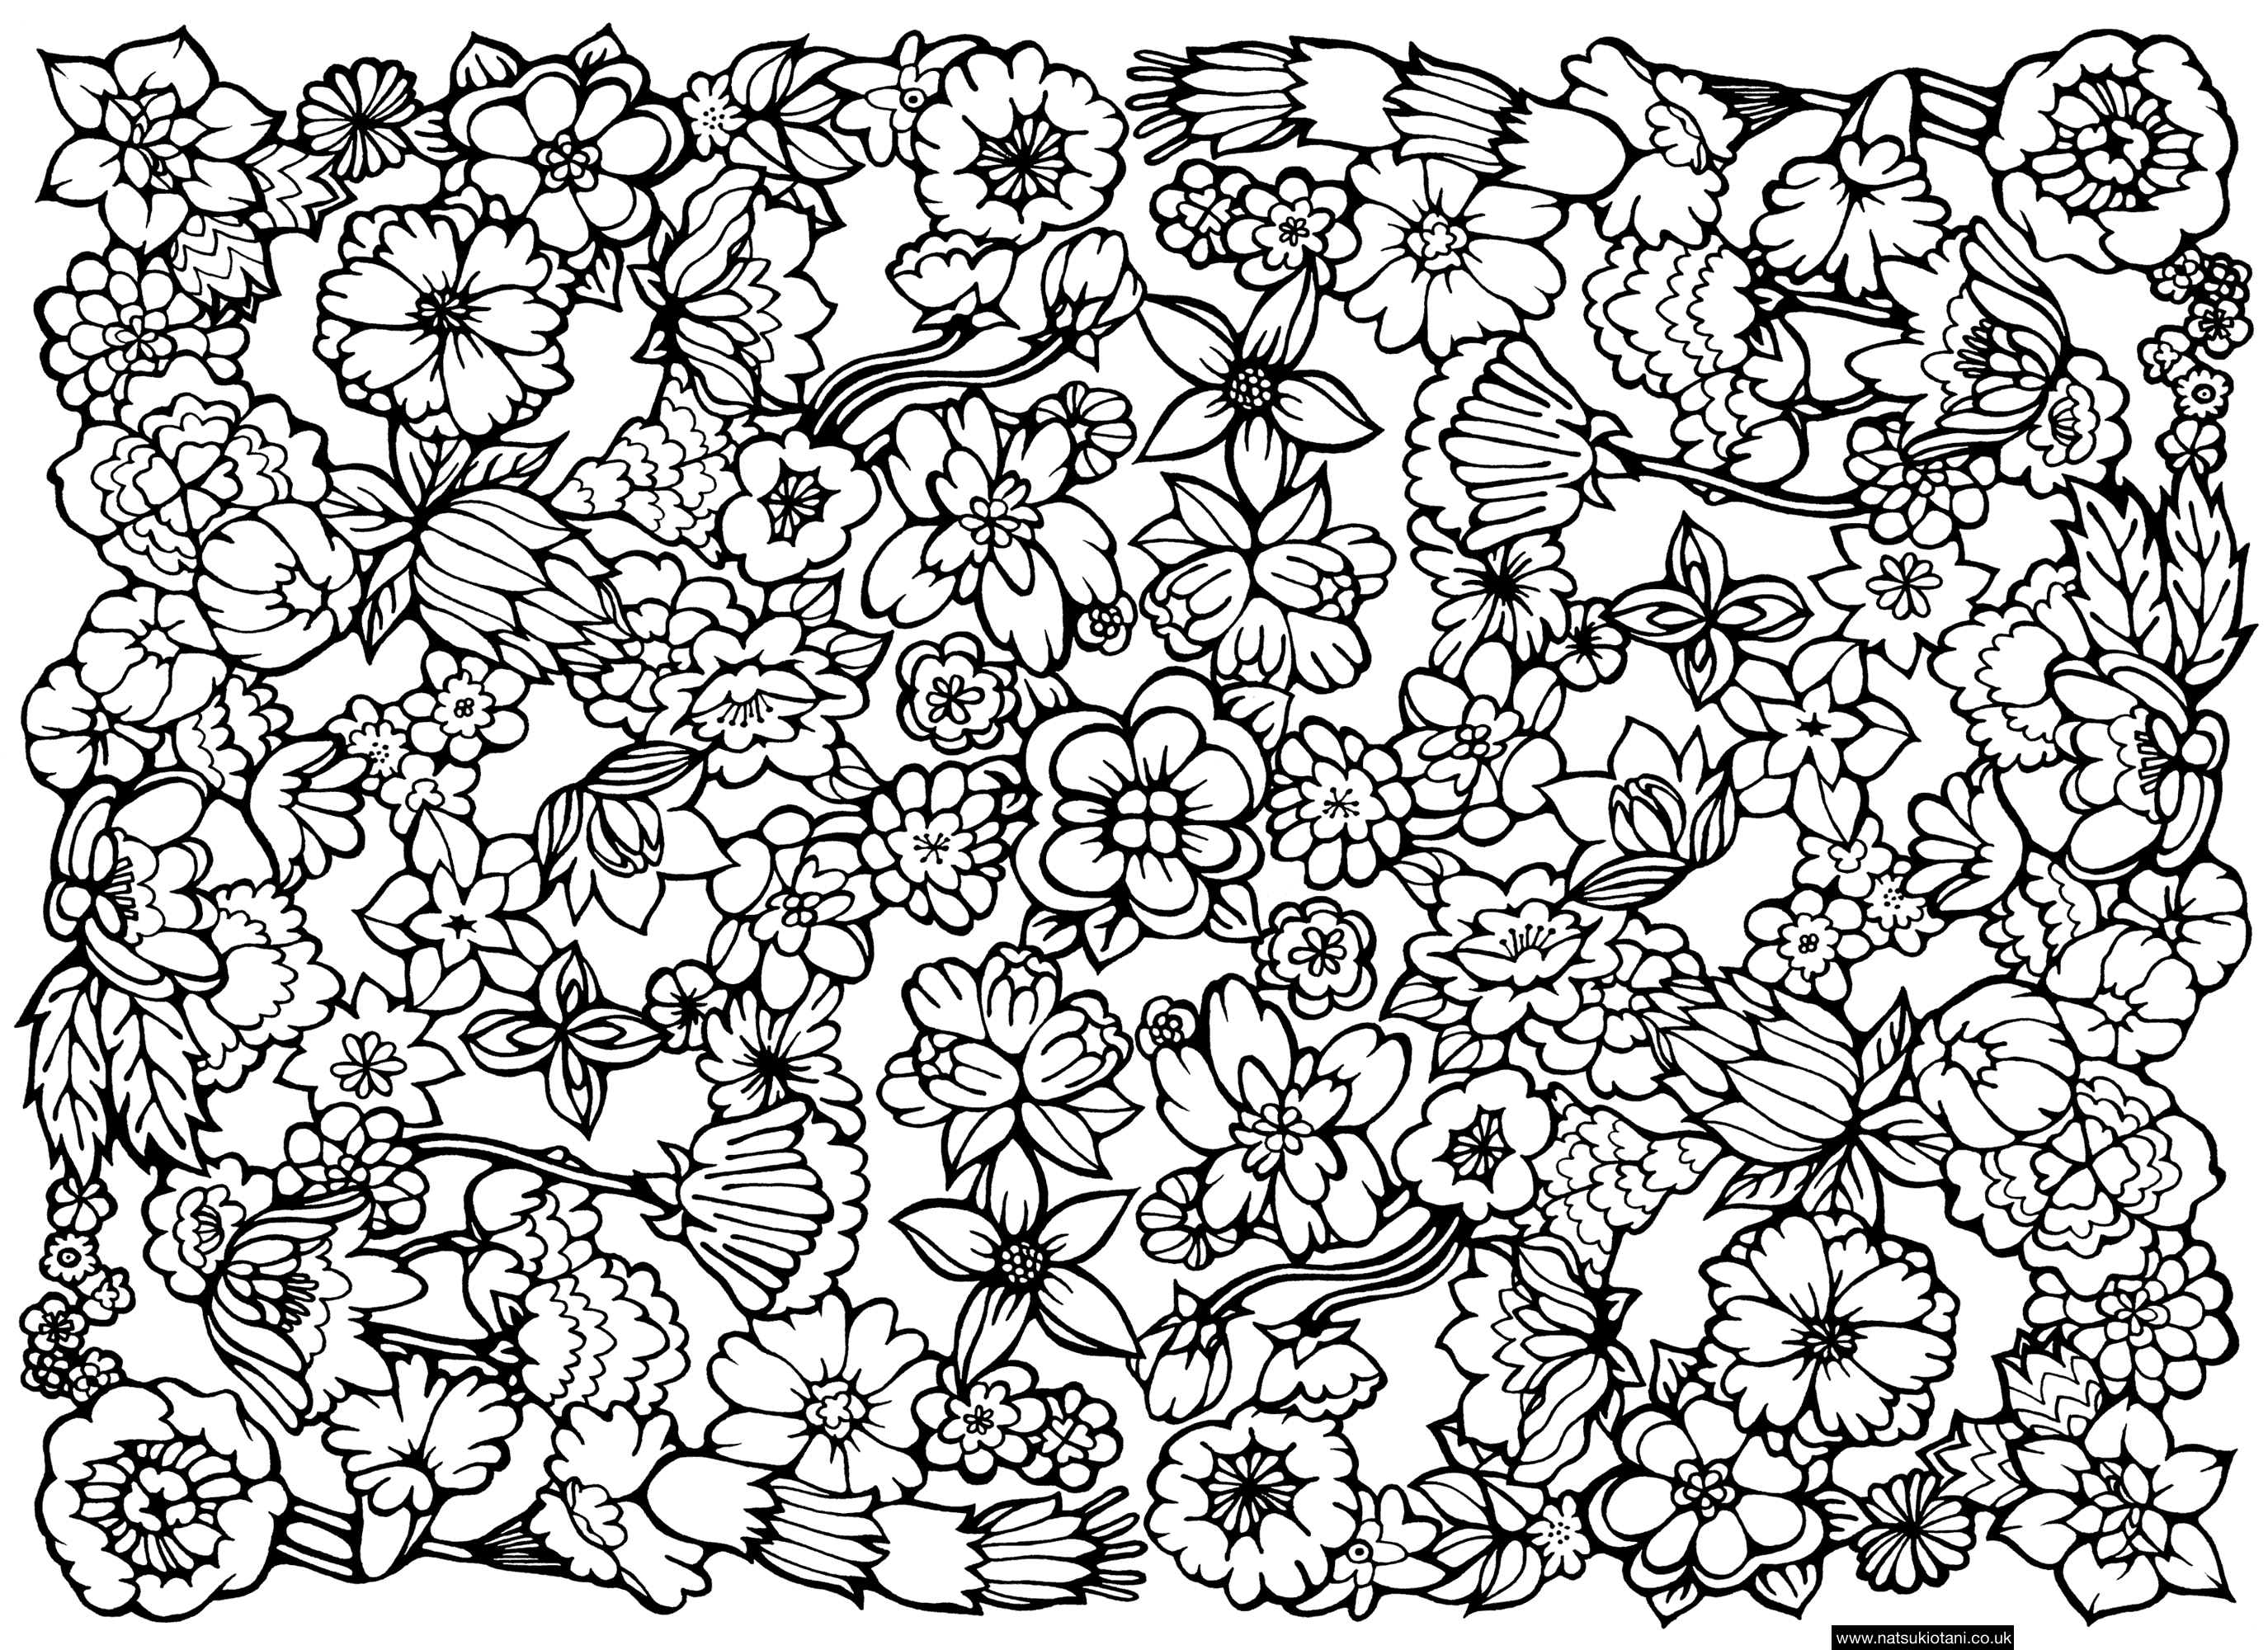 coloring page hard hard butterfly coloring pages at getdrawings free download page hard coloring